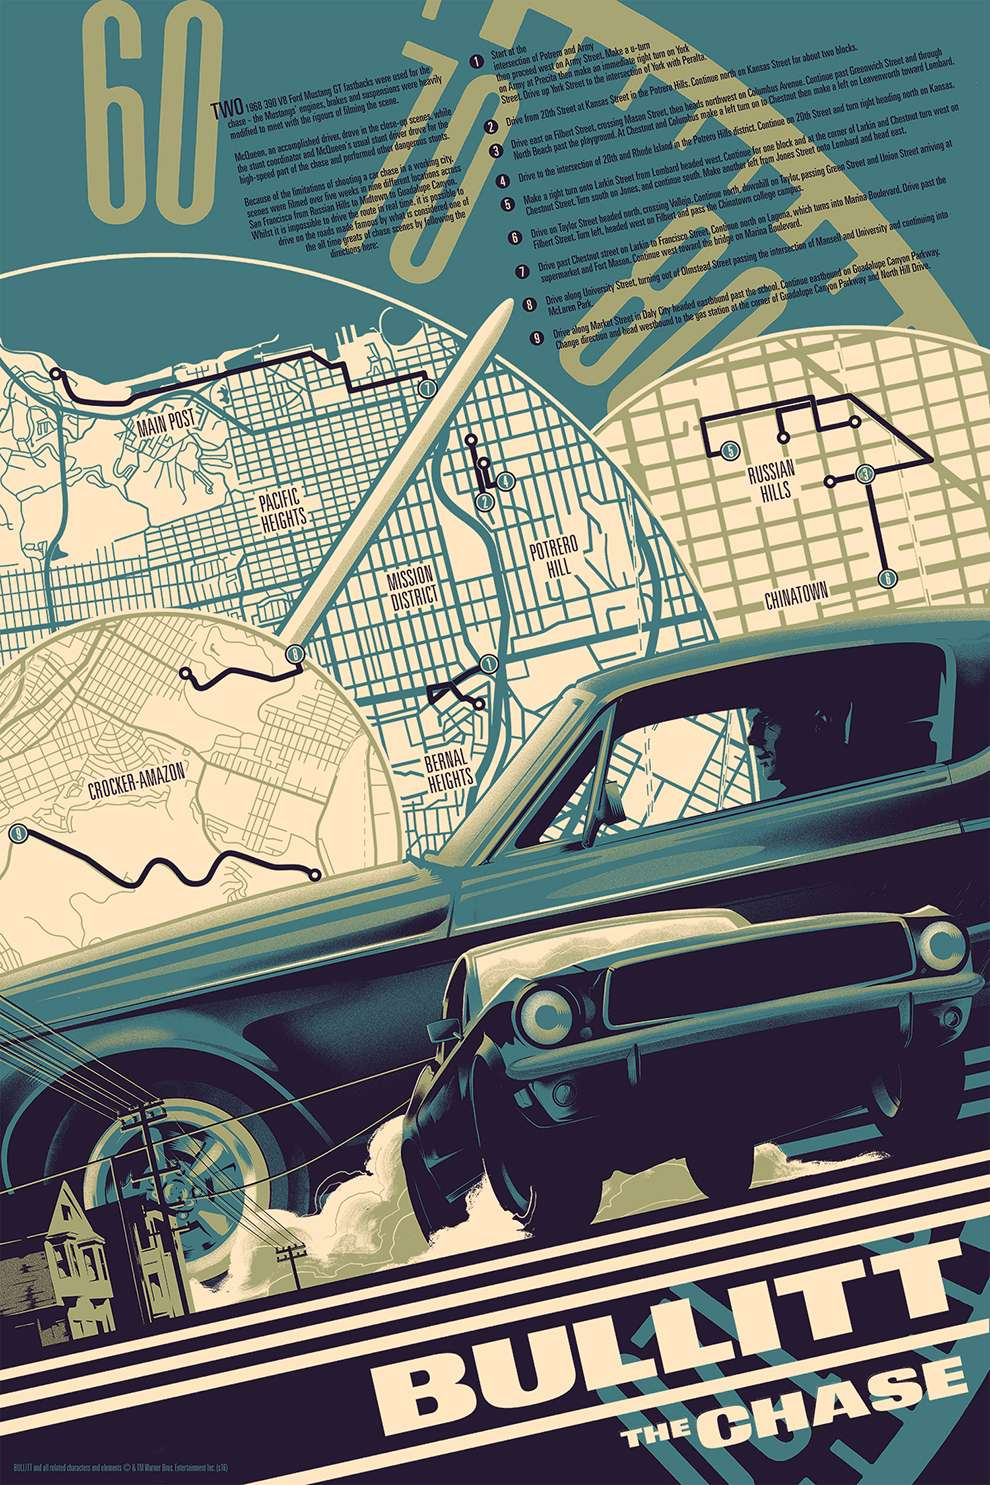 Matt Taylor,  Retro poster art of a car and a map